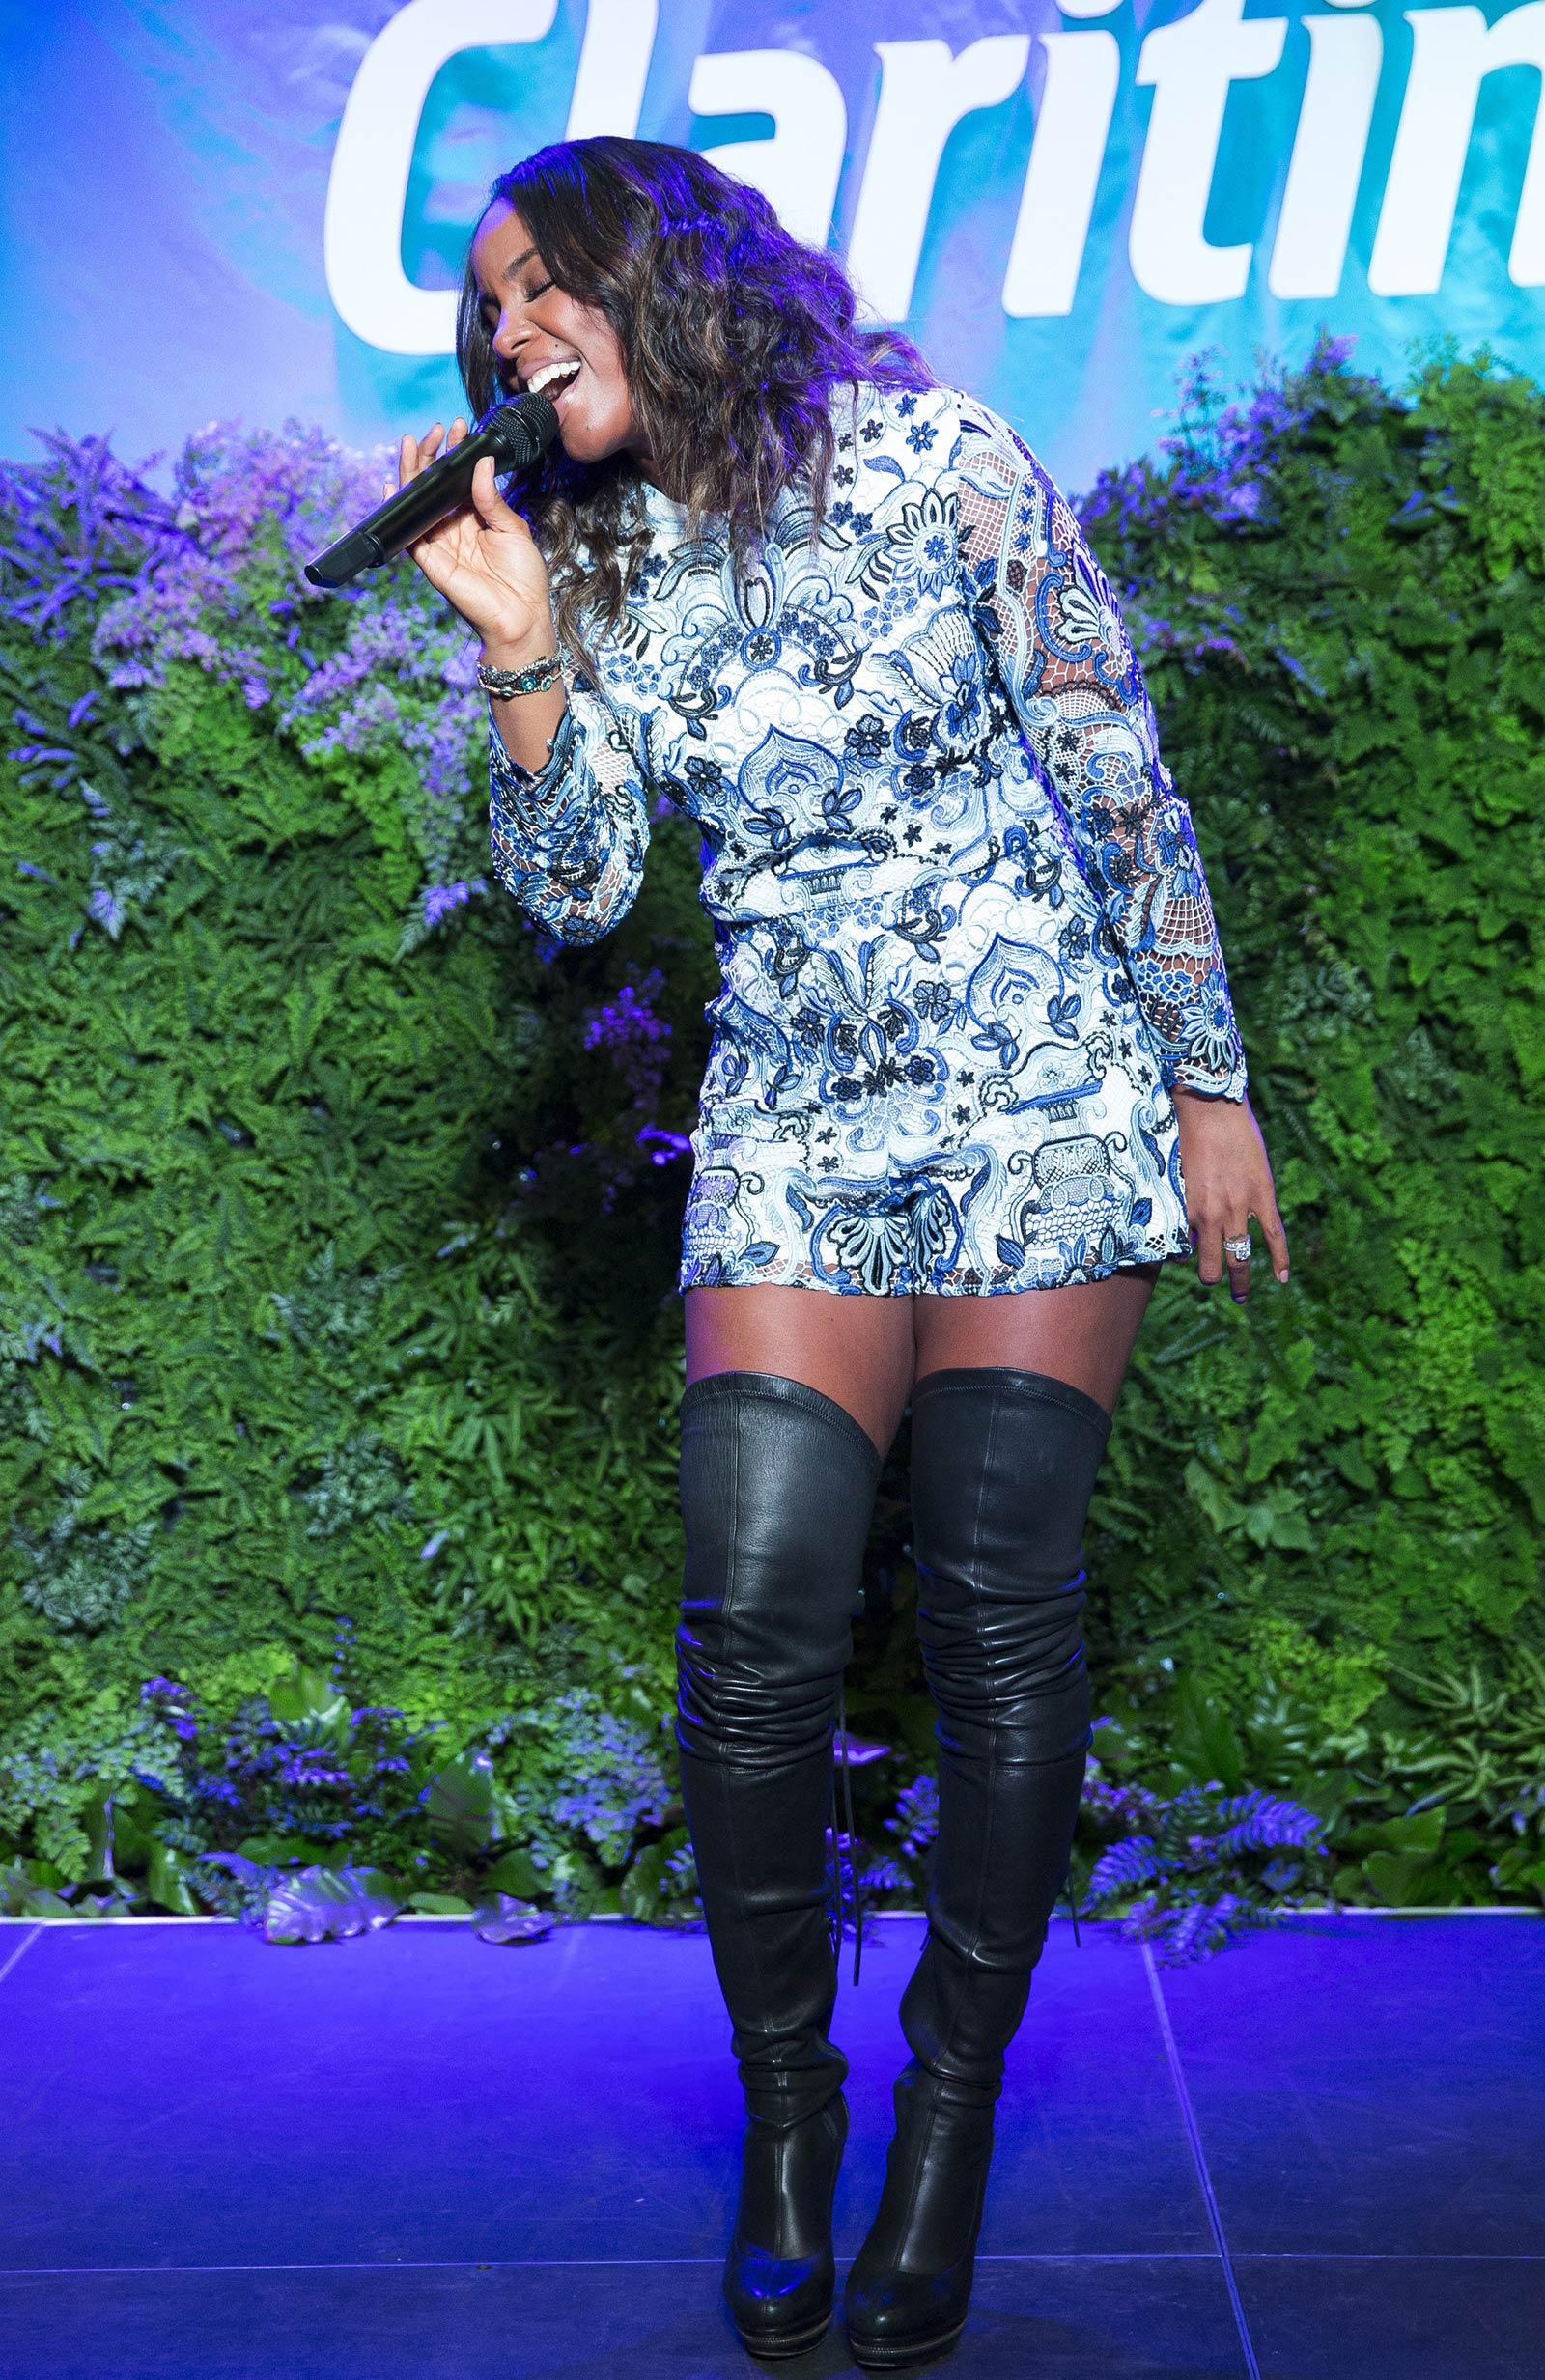 Kelly Rowland performs at the Claritin kick off spring event